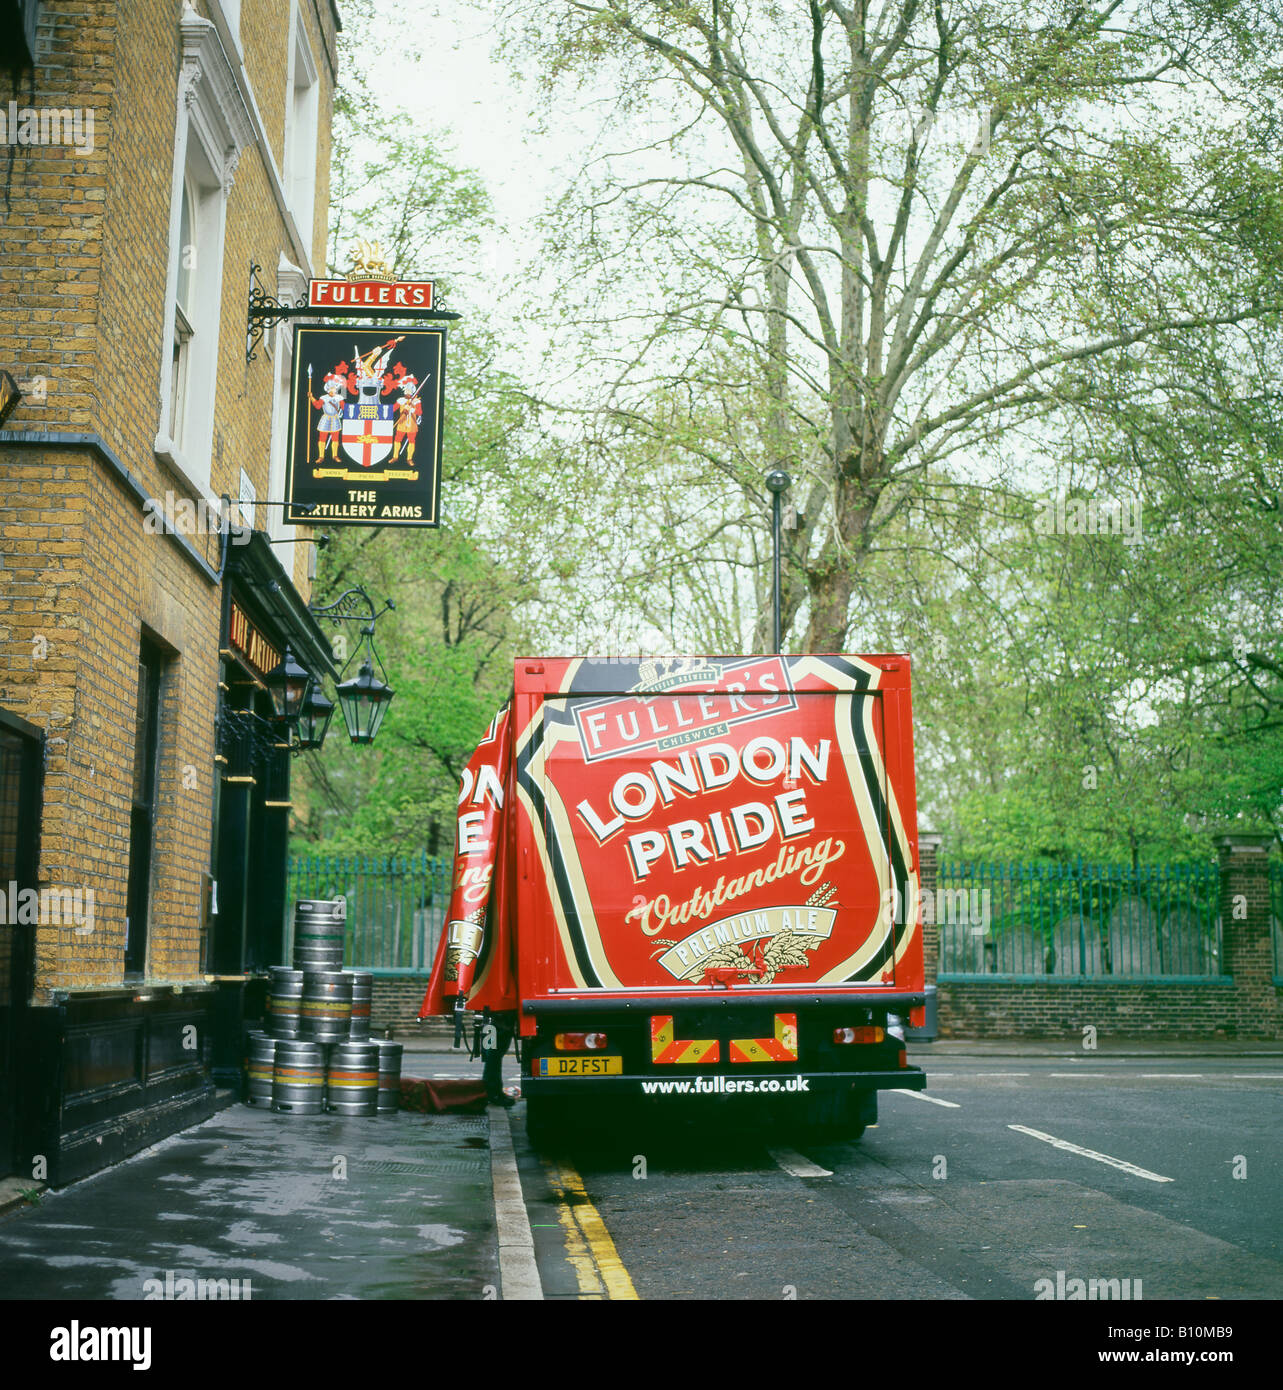 Fuller's London Pride lorry delivering beer barrels to the Artillery Arms pub near Bunhill Fields central London - Stock Image